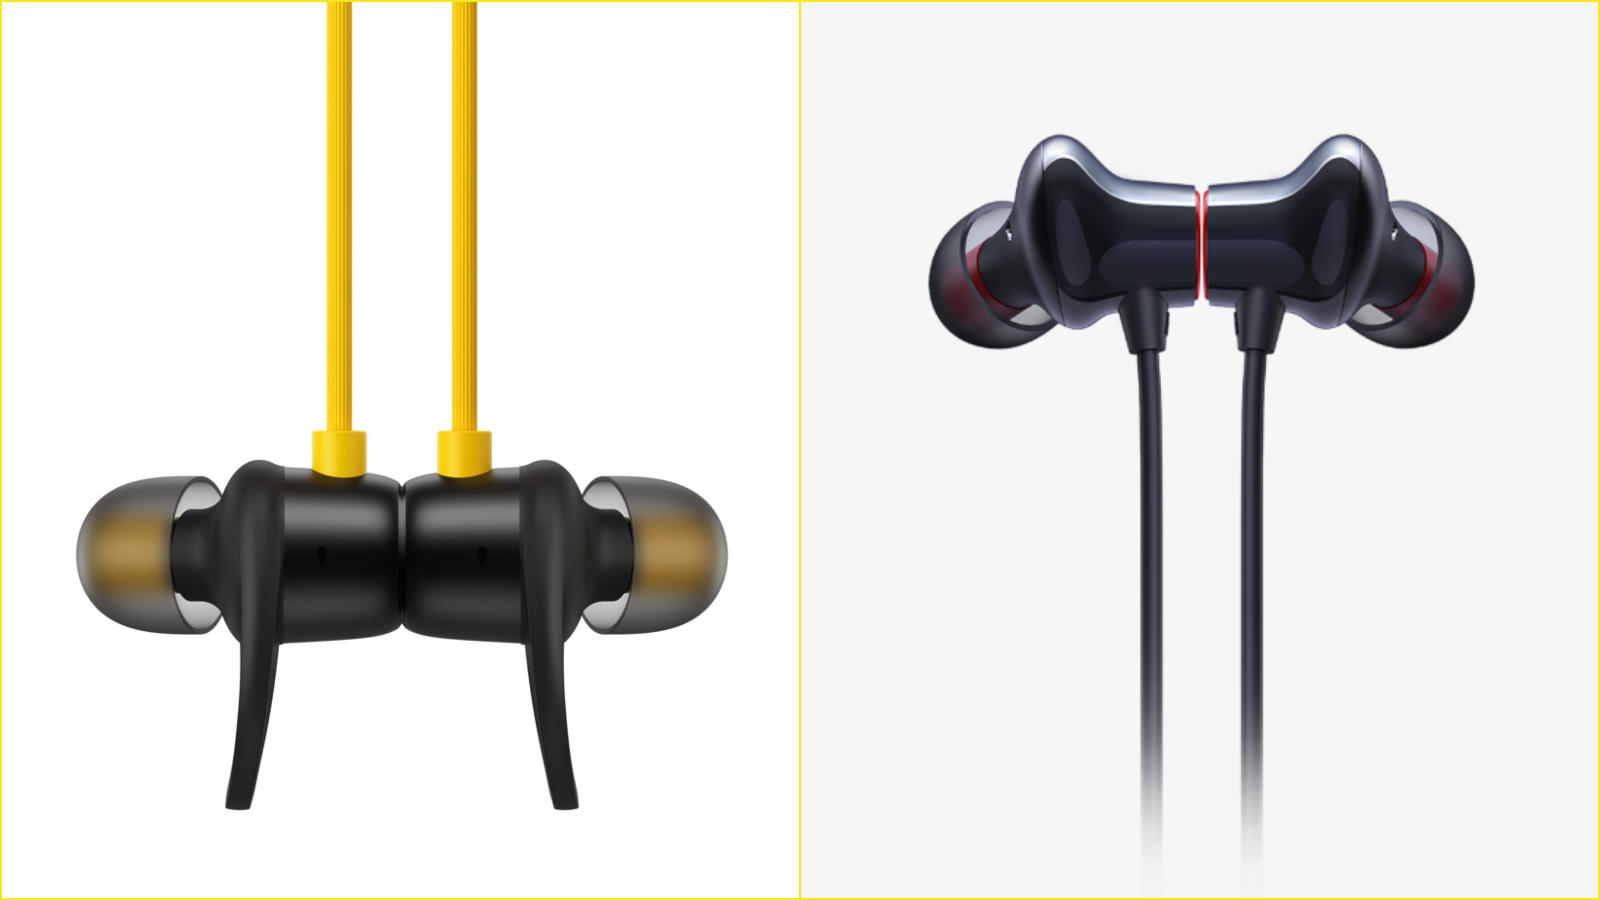 Realme Wireless Bud Vs Oneplus Bullet Wireless 2 Realme Buds Wireless Vs Oneplus Bullets Wireless 2 Which Is Worth Buying Gadgets Now